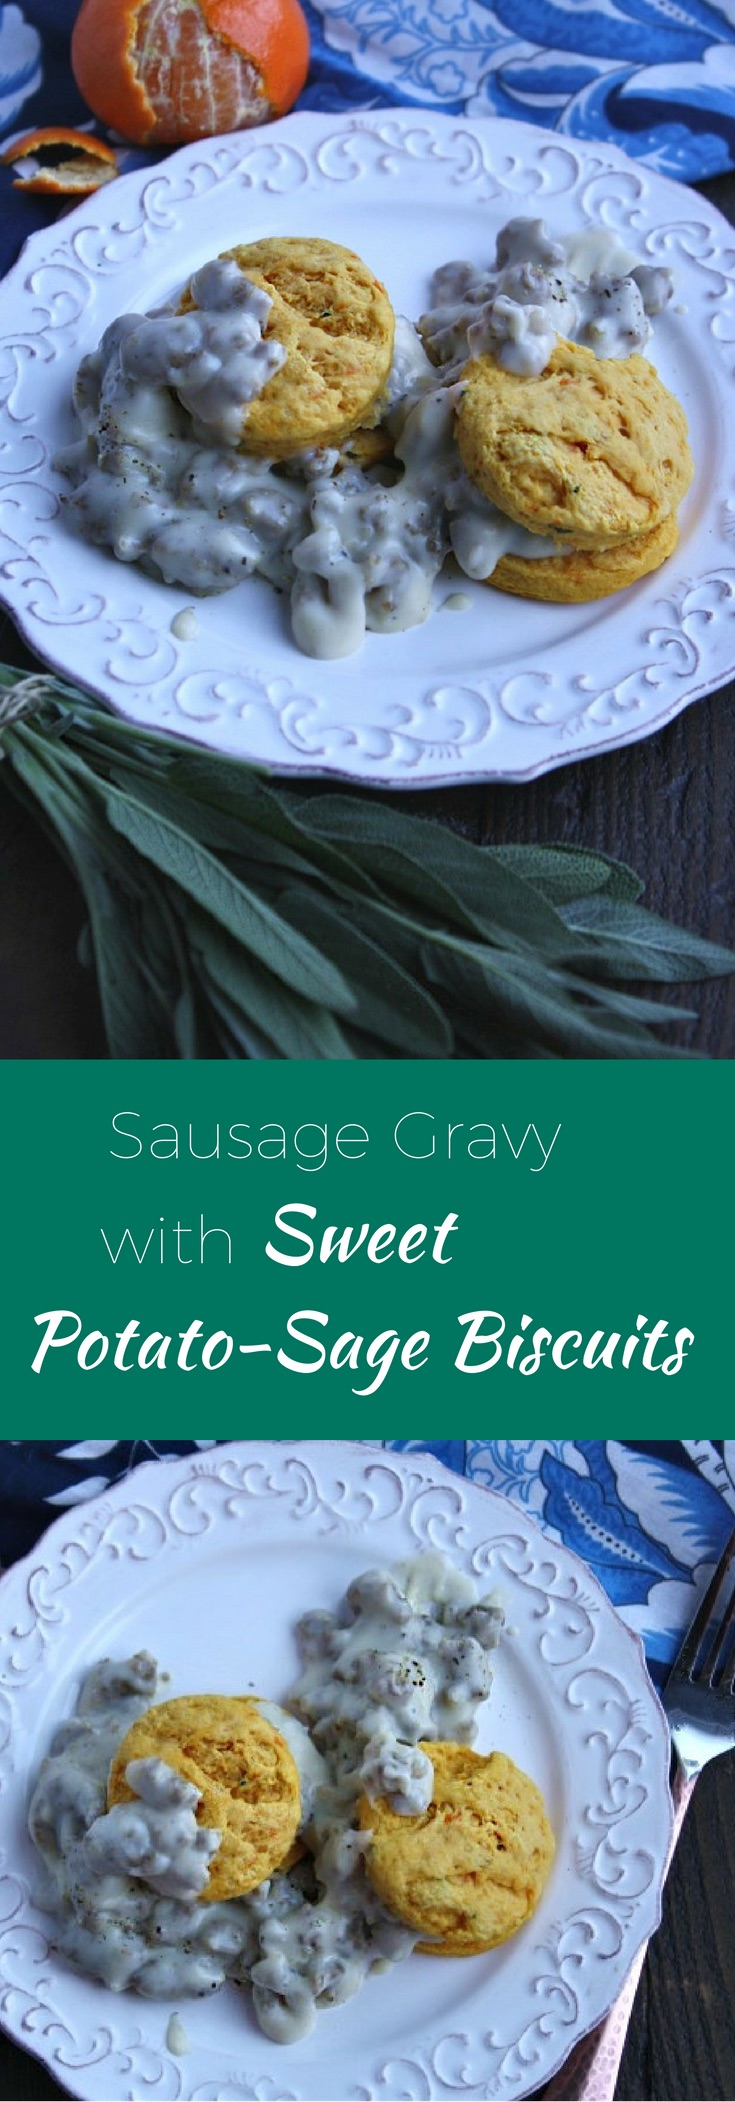 Make a fabulous (and easy) fall breakfast: Sausage Gravy and Sweet Potato-Sage Biscuits!